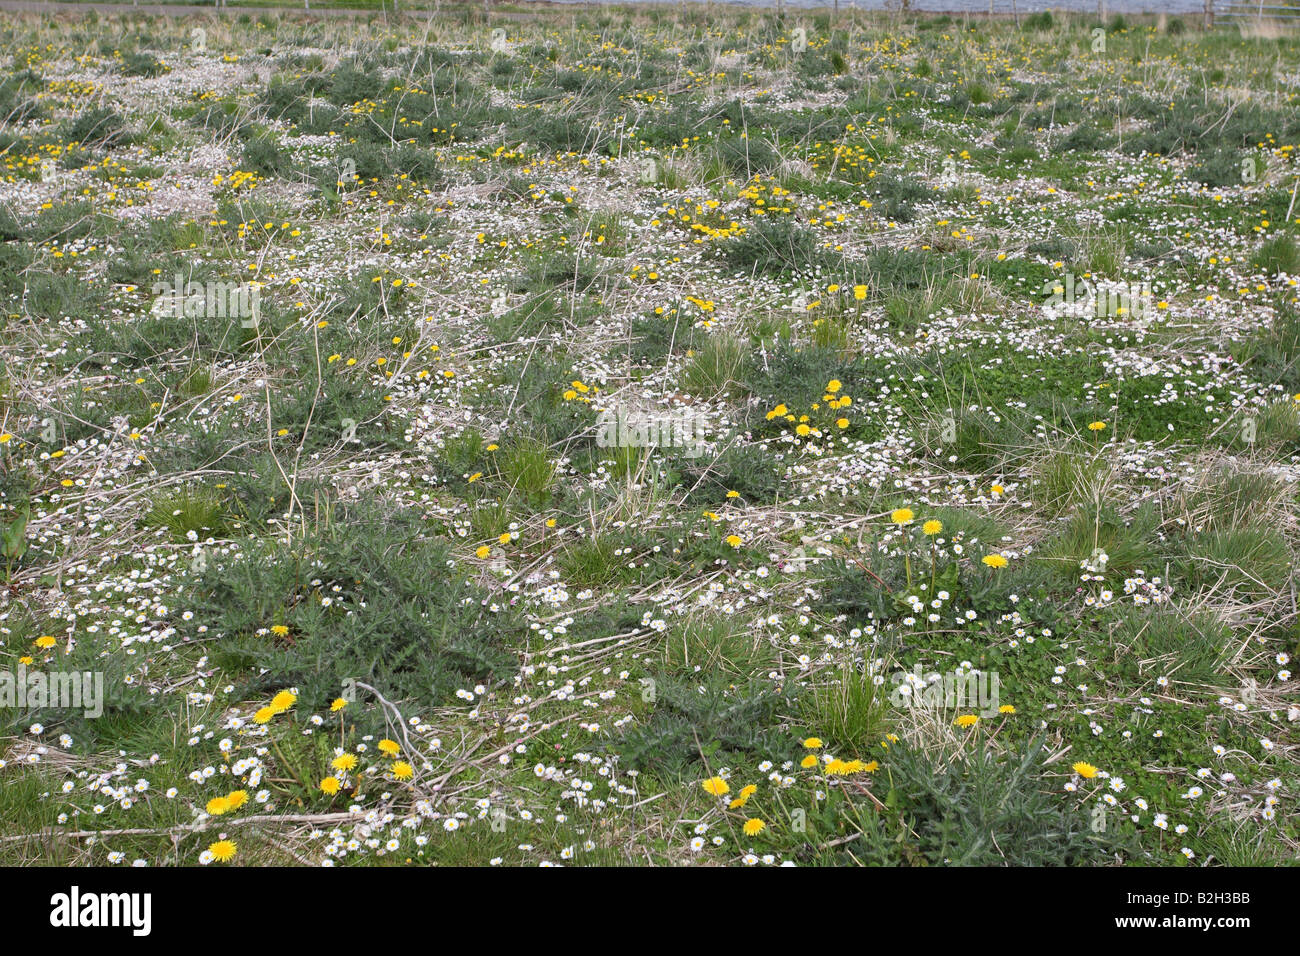 CONSERVATION AREA WITH DAISIES DANDELIONS AND THISTLES WILL PROVIDE SEEDS FOR FINCHES - Stock Image